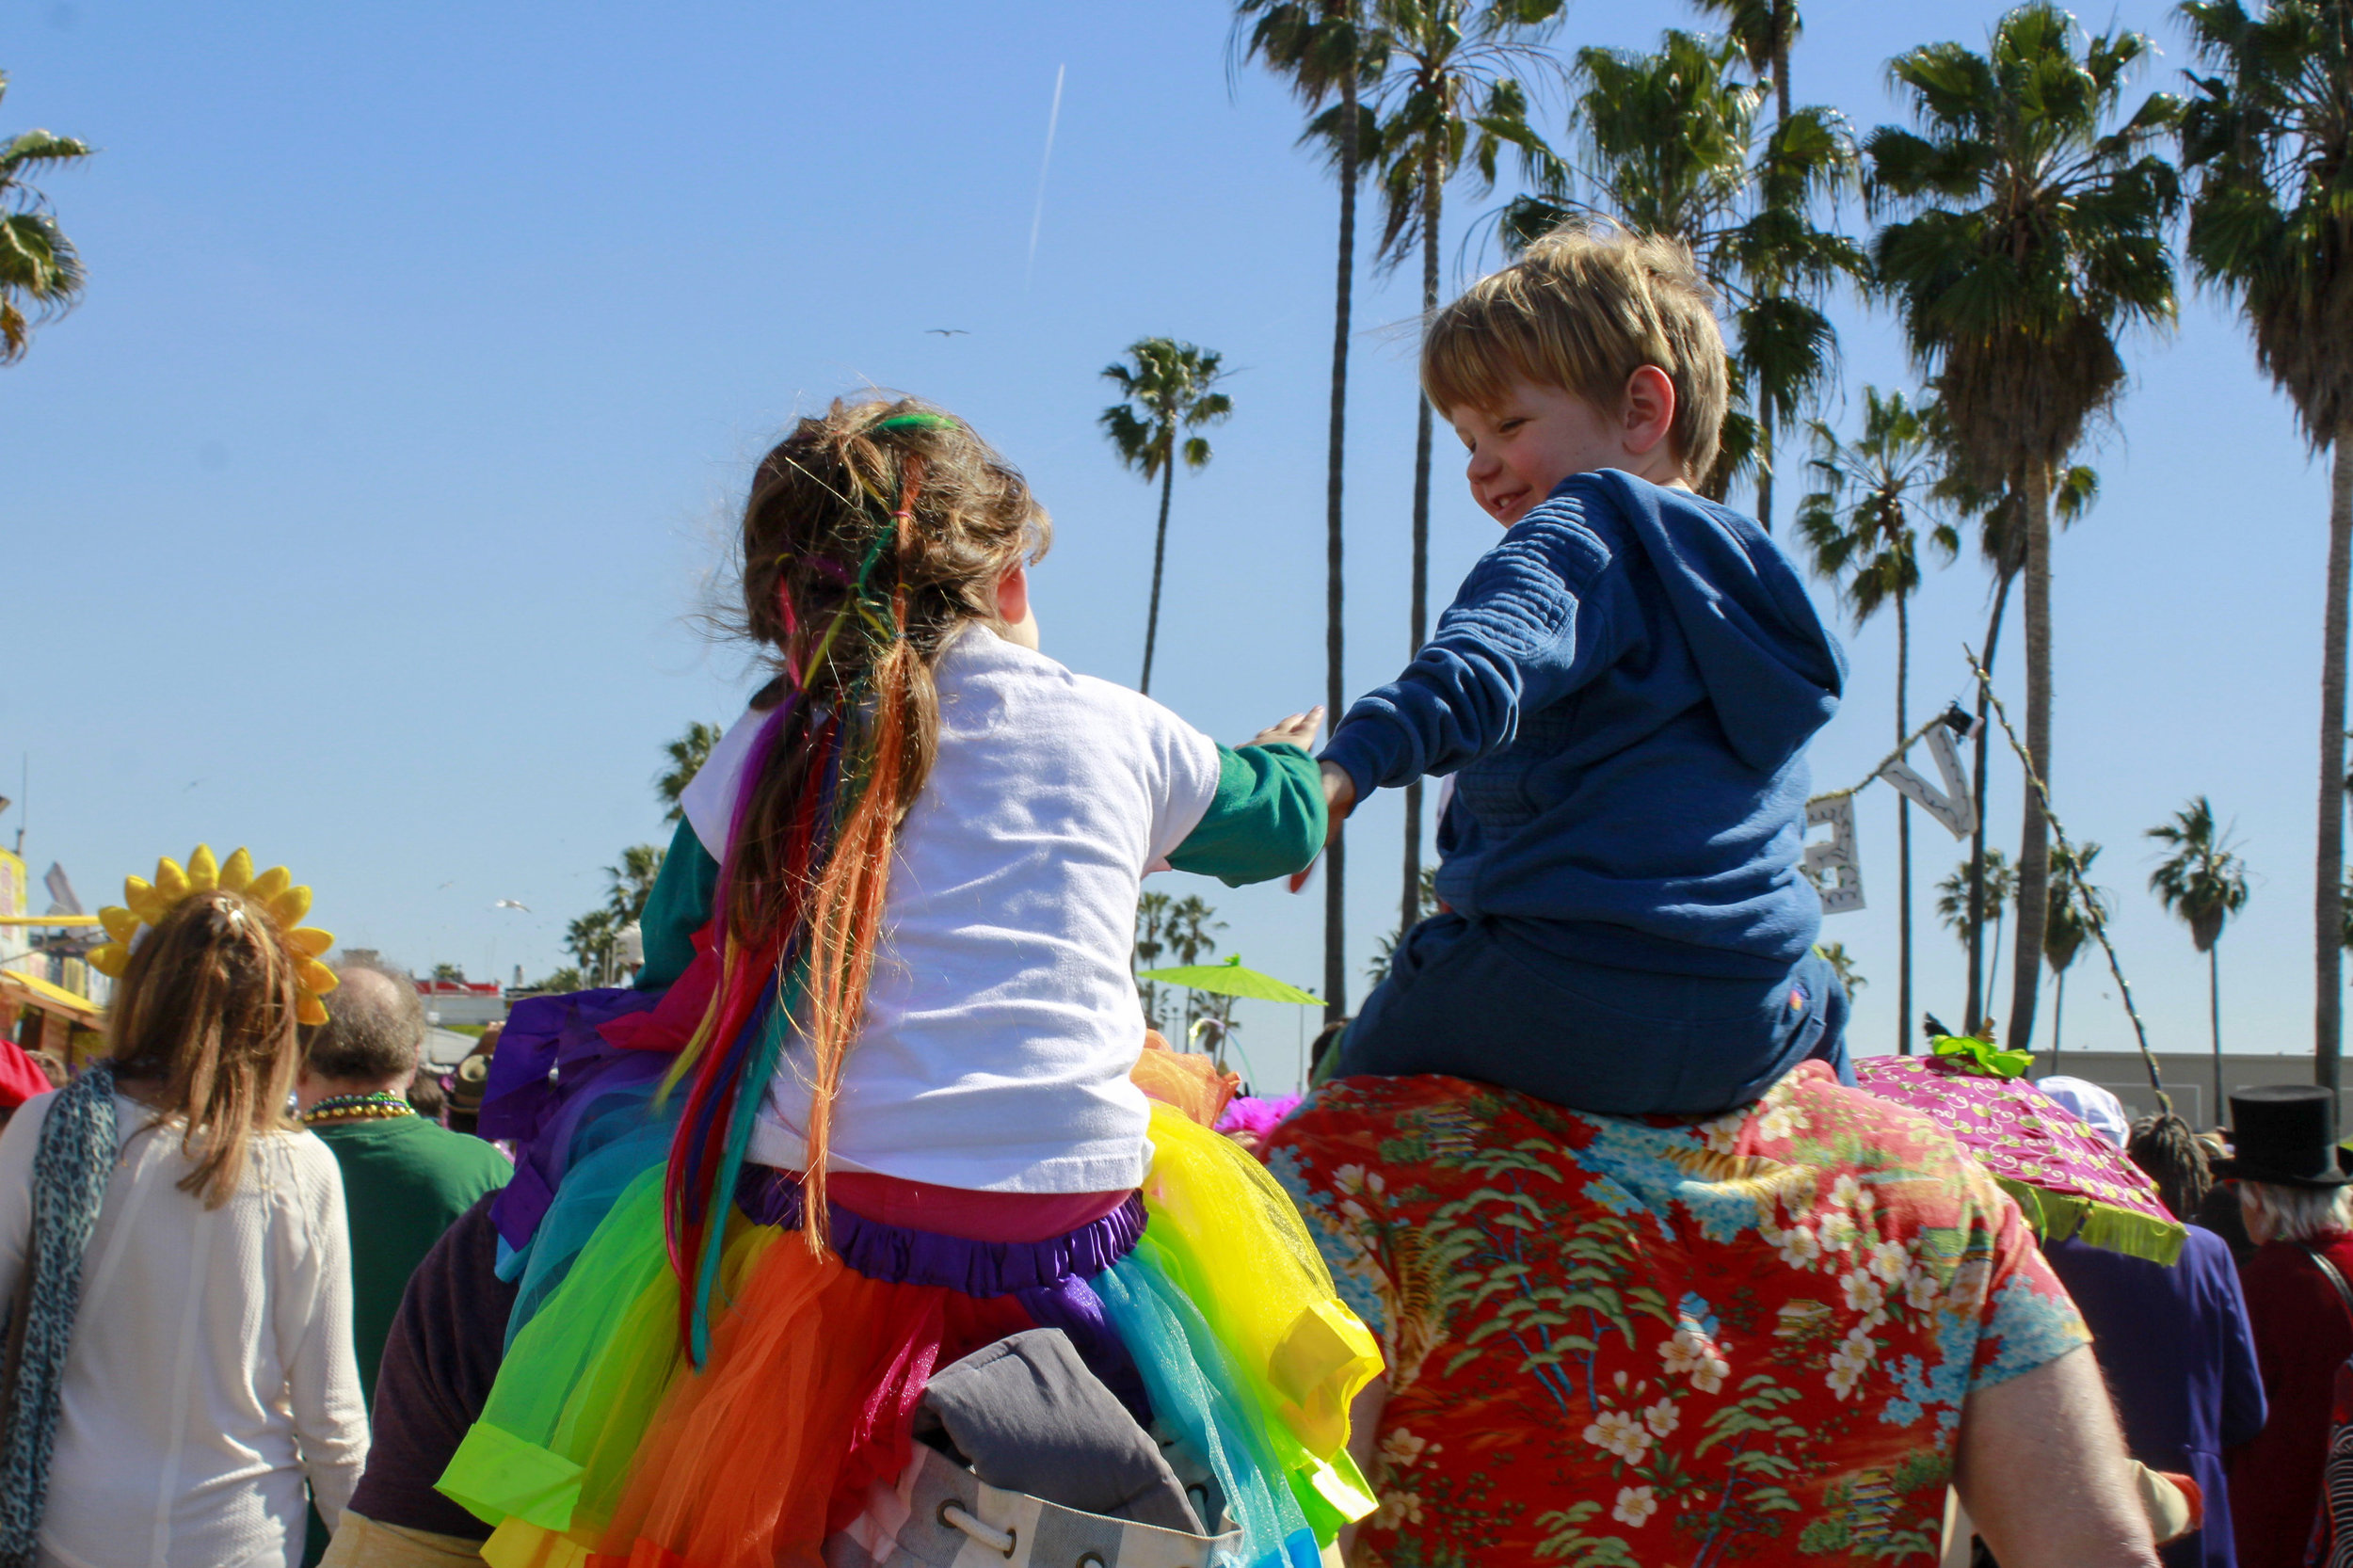 Children reach for one another as they rest on shoulders amongst the chaos of the 17th annual Venice Beach Mardi Gras parade on Feb 23, 2019 in Los Angeles, California. Photo by Danica Creahan.